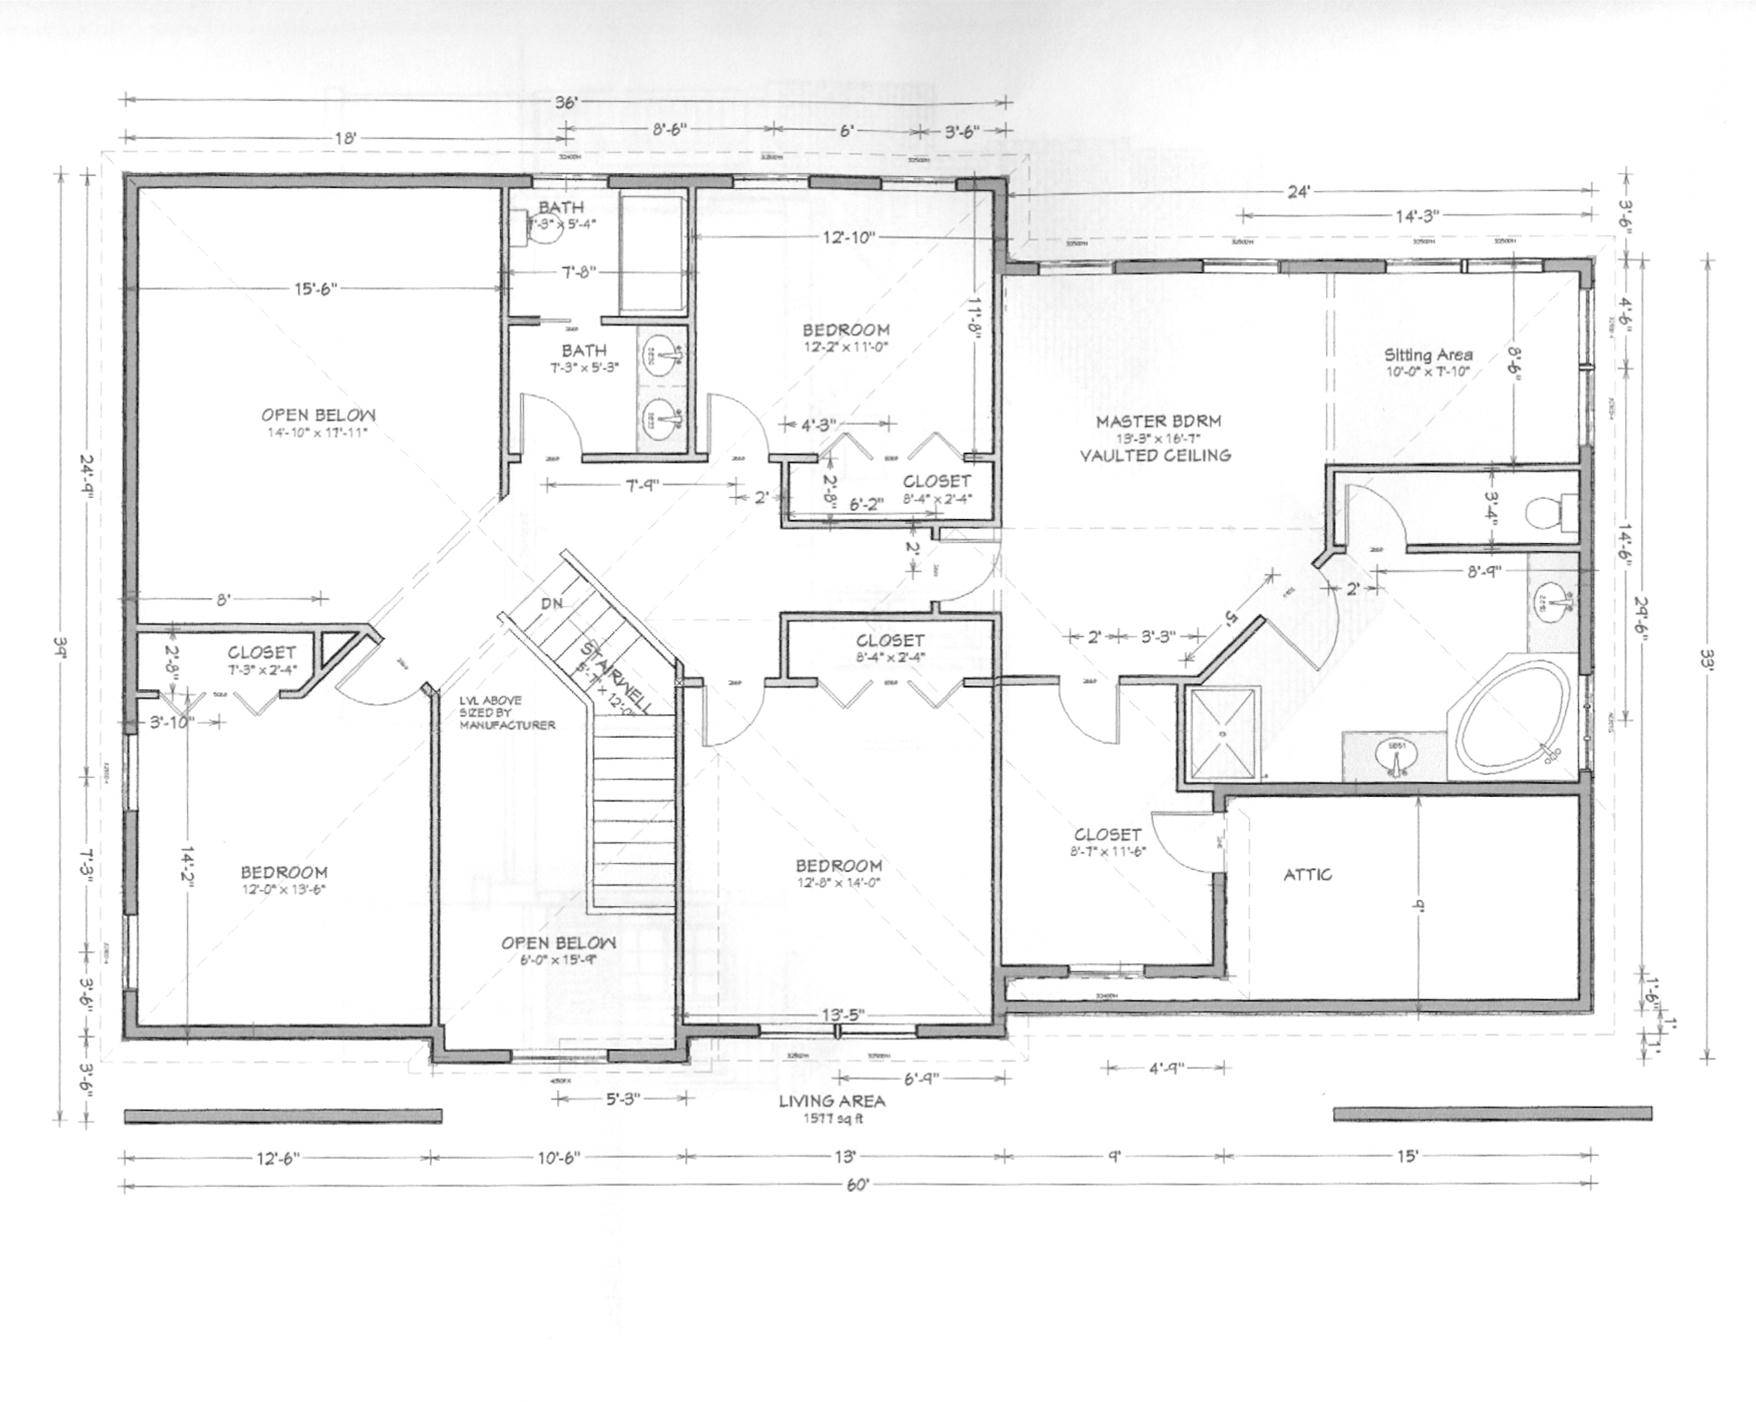 17 One Story Walkout Basement House Plans That Will Make You Happier House Plans